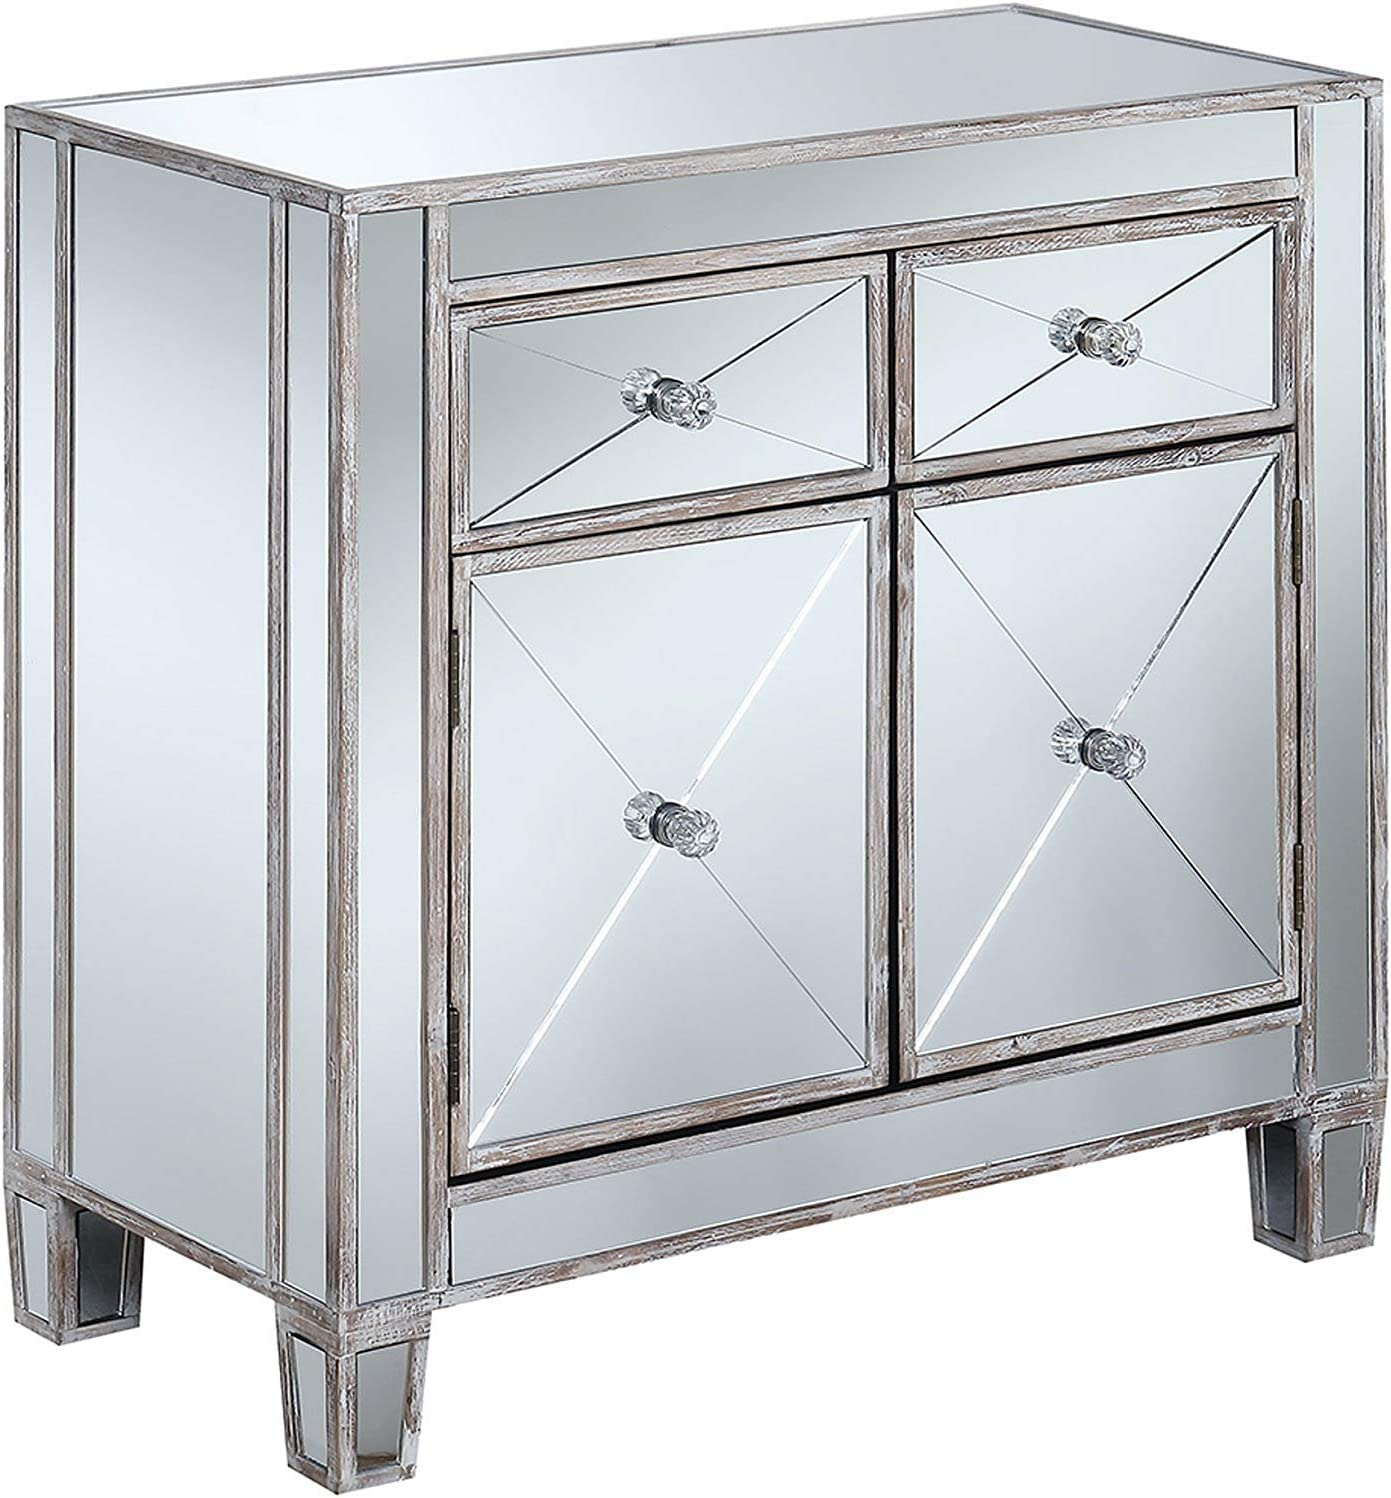 Convenience Concepts Gold Coast Vineyard 2 Drawer Mirrored Hall Table, Weathered White